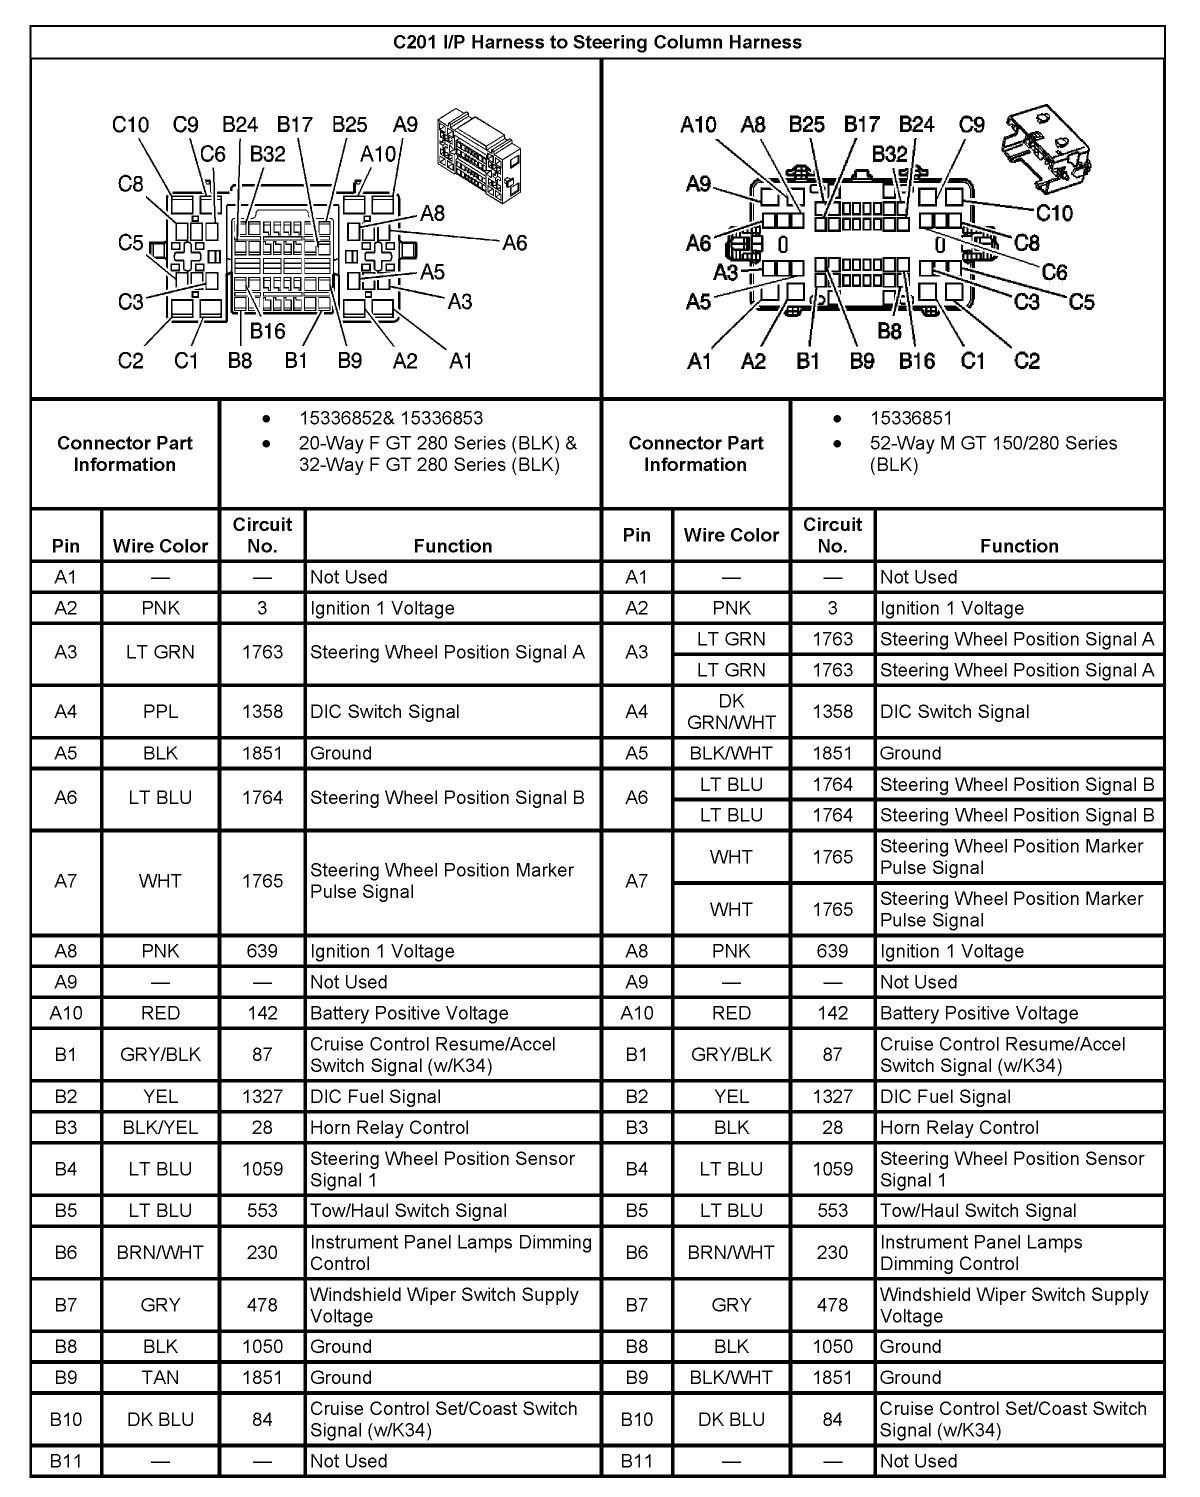 2003 gmc yukon denali wiring harness - wiring diagram thanks-note-b -  thanks-note-b.agriturismoduemadonne.it  agriturismoduemadonne.it